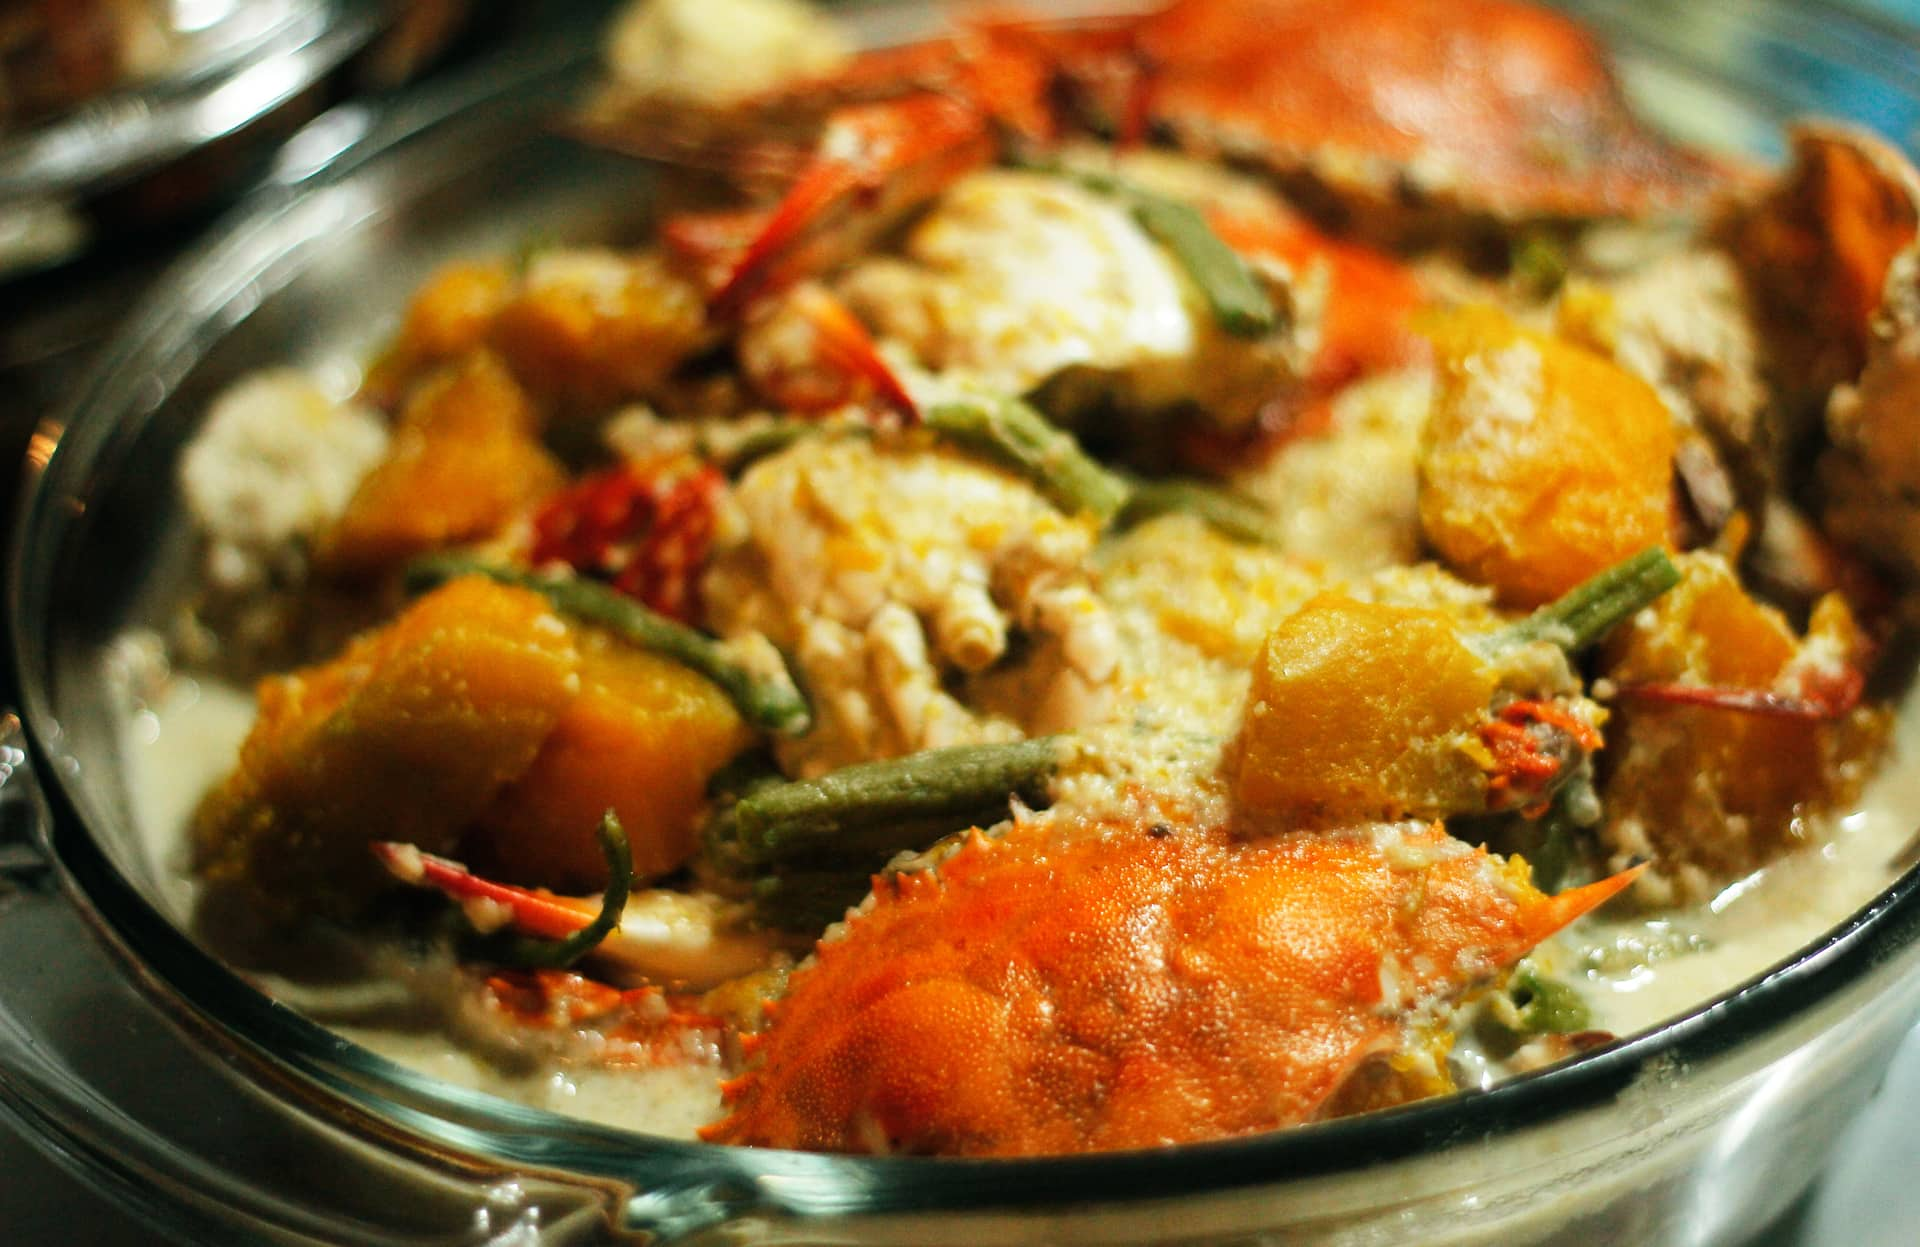 A picture of a deliciously cooked seafood